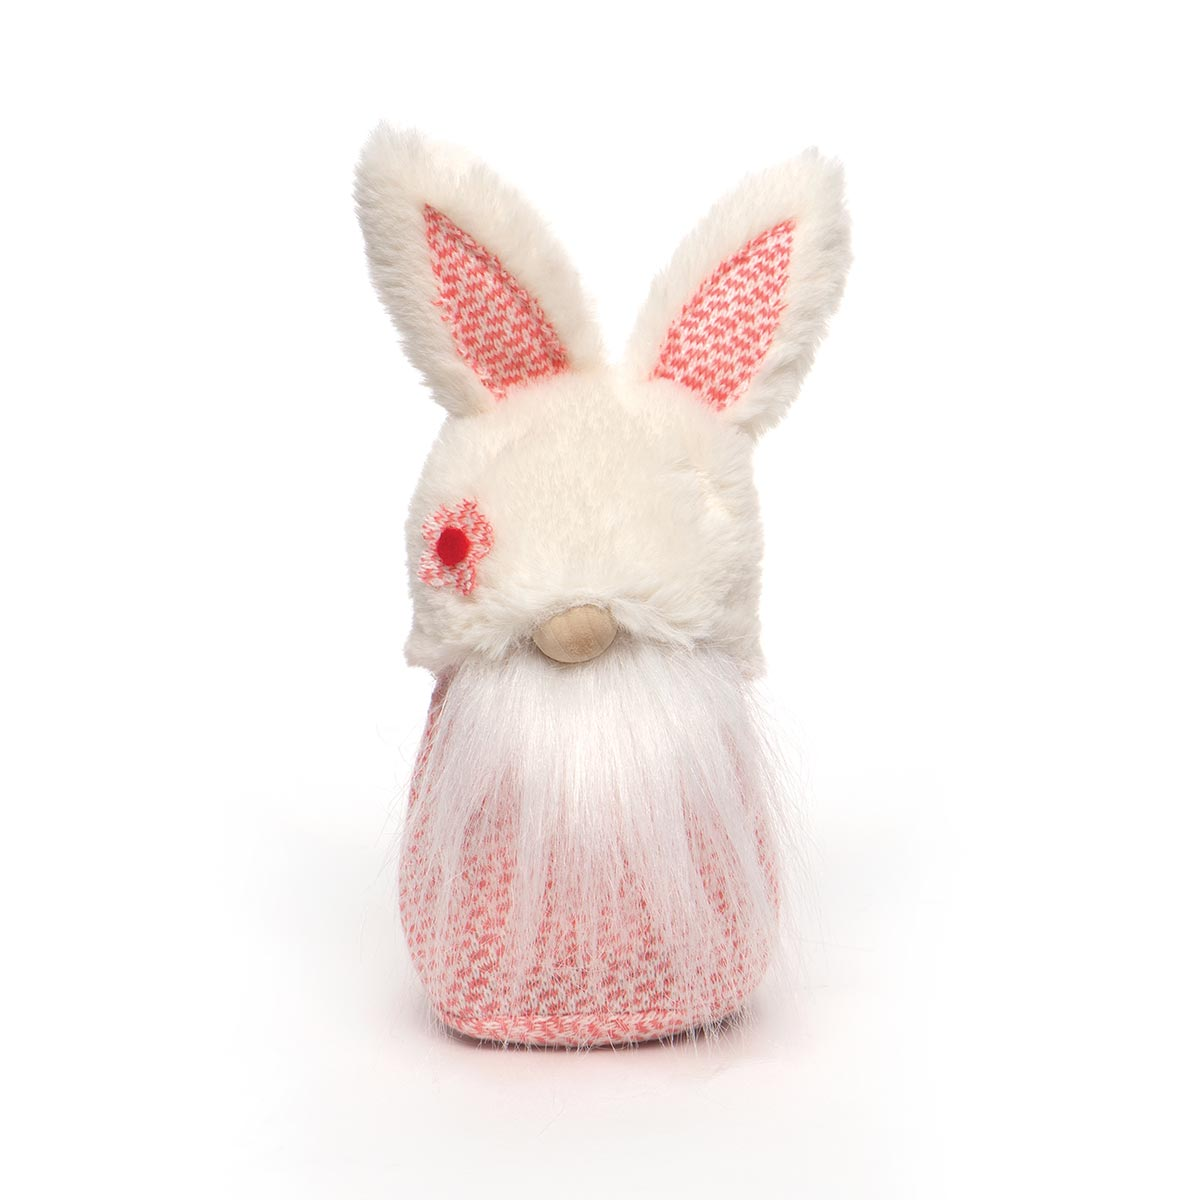 SPRING FLING BUNNY GNOME WITH FUZZY HAT, WOOD NOSE AND WHITE